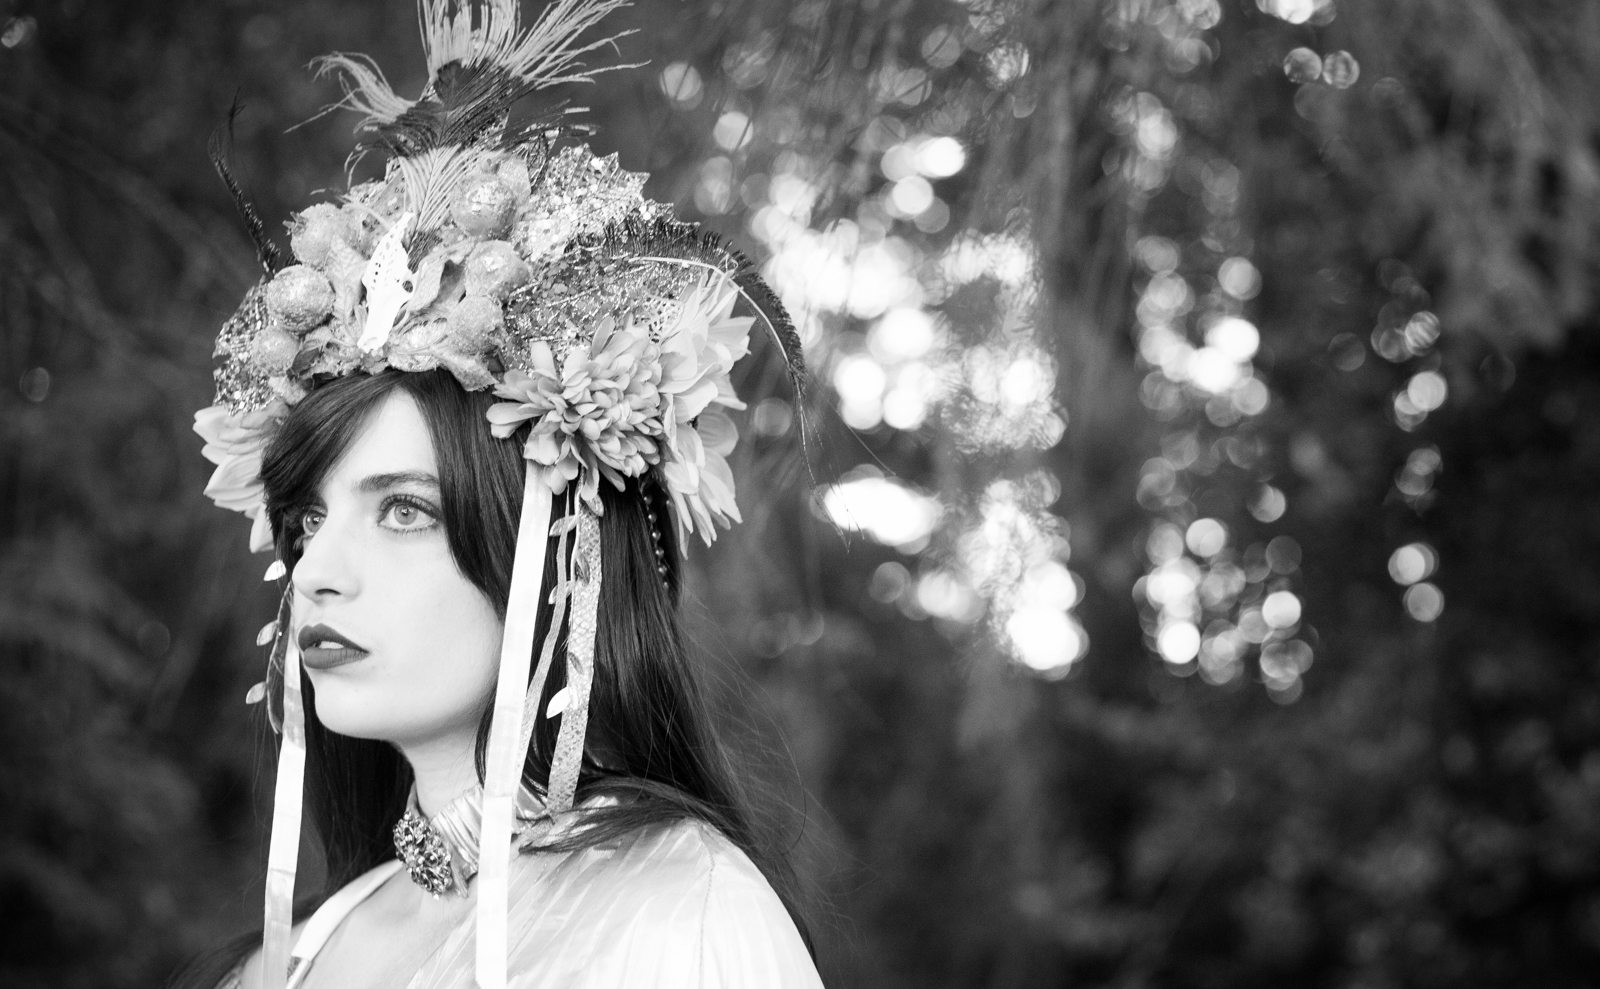 headdress-by-heather-schofner-1